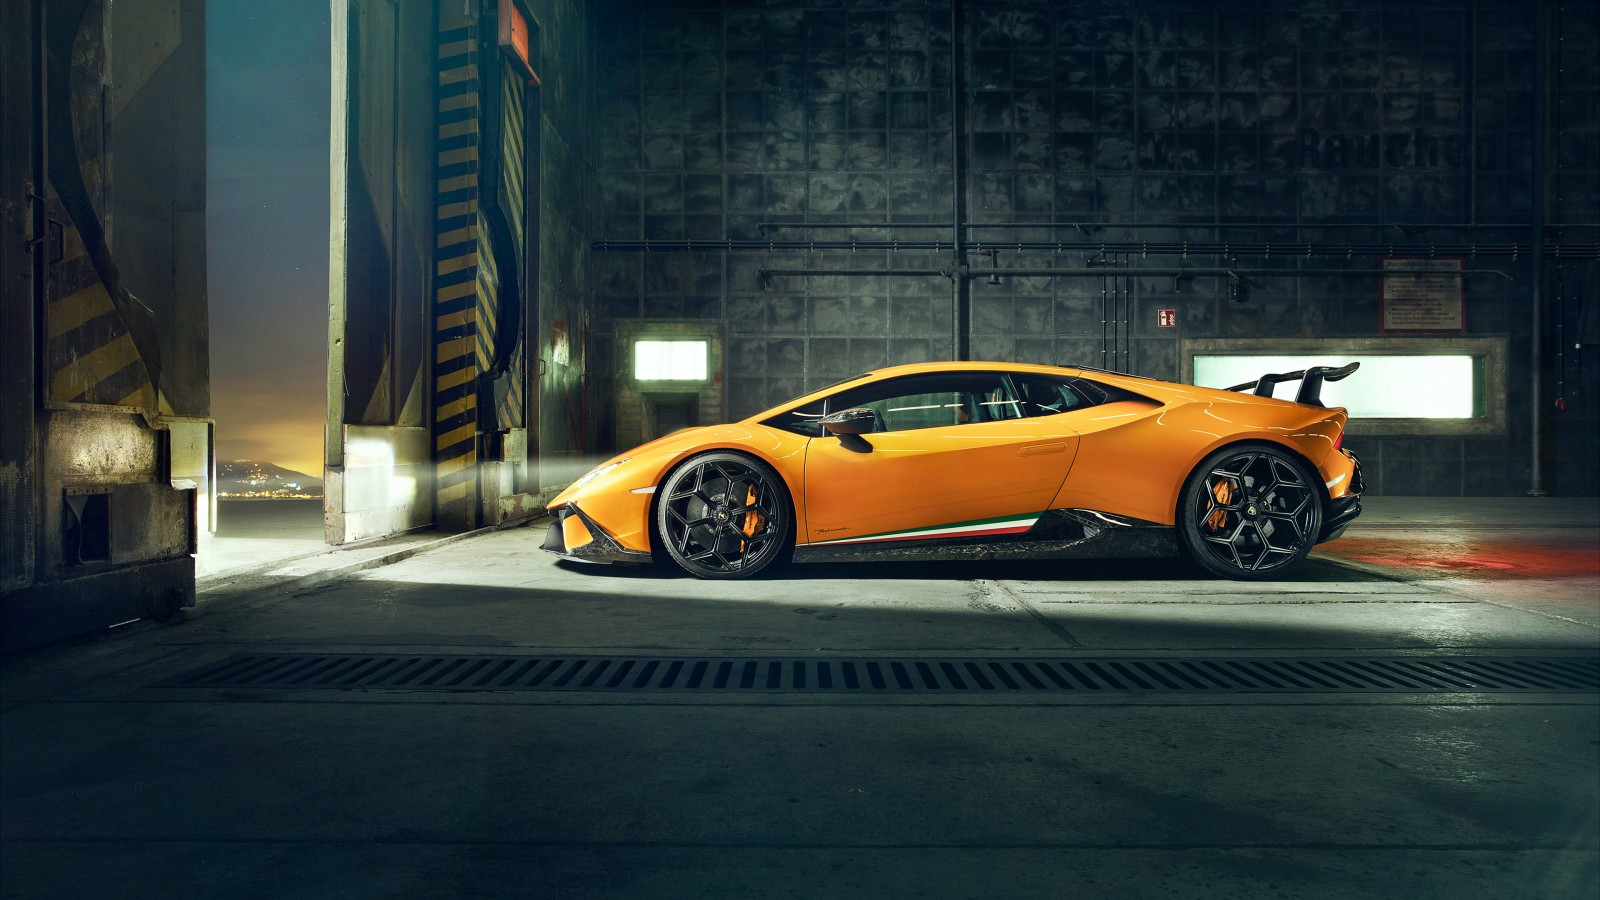 Cute Love Wallpaper Hq Novitec Lamborghini Huracan Perfomante 2018 4k Wallpapers